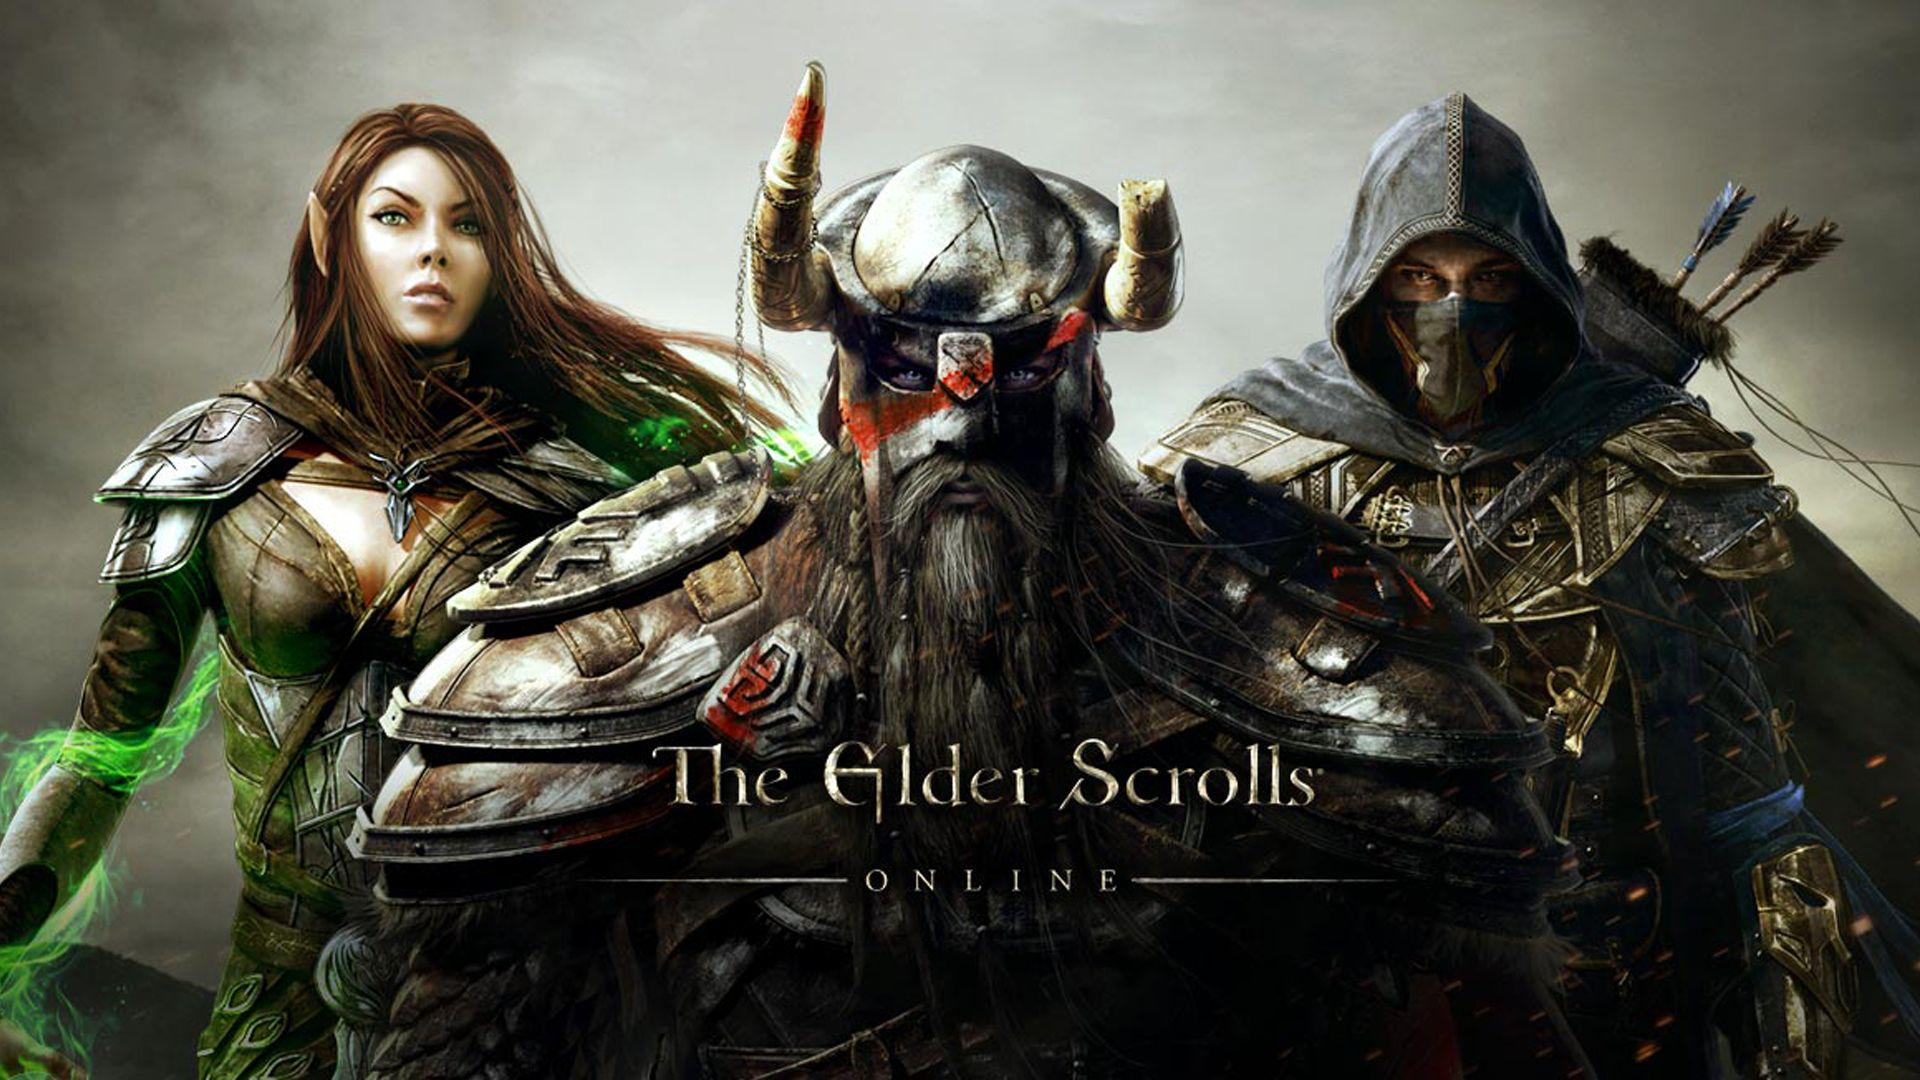 The Elder Scrolls Online: Infographic